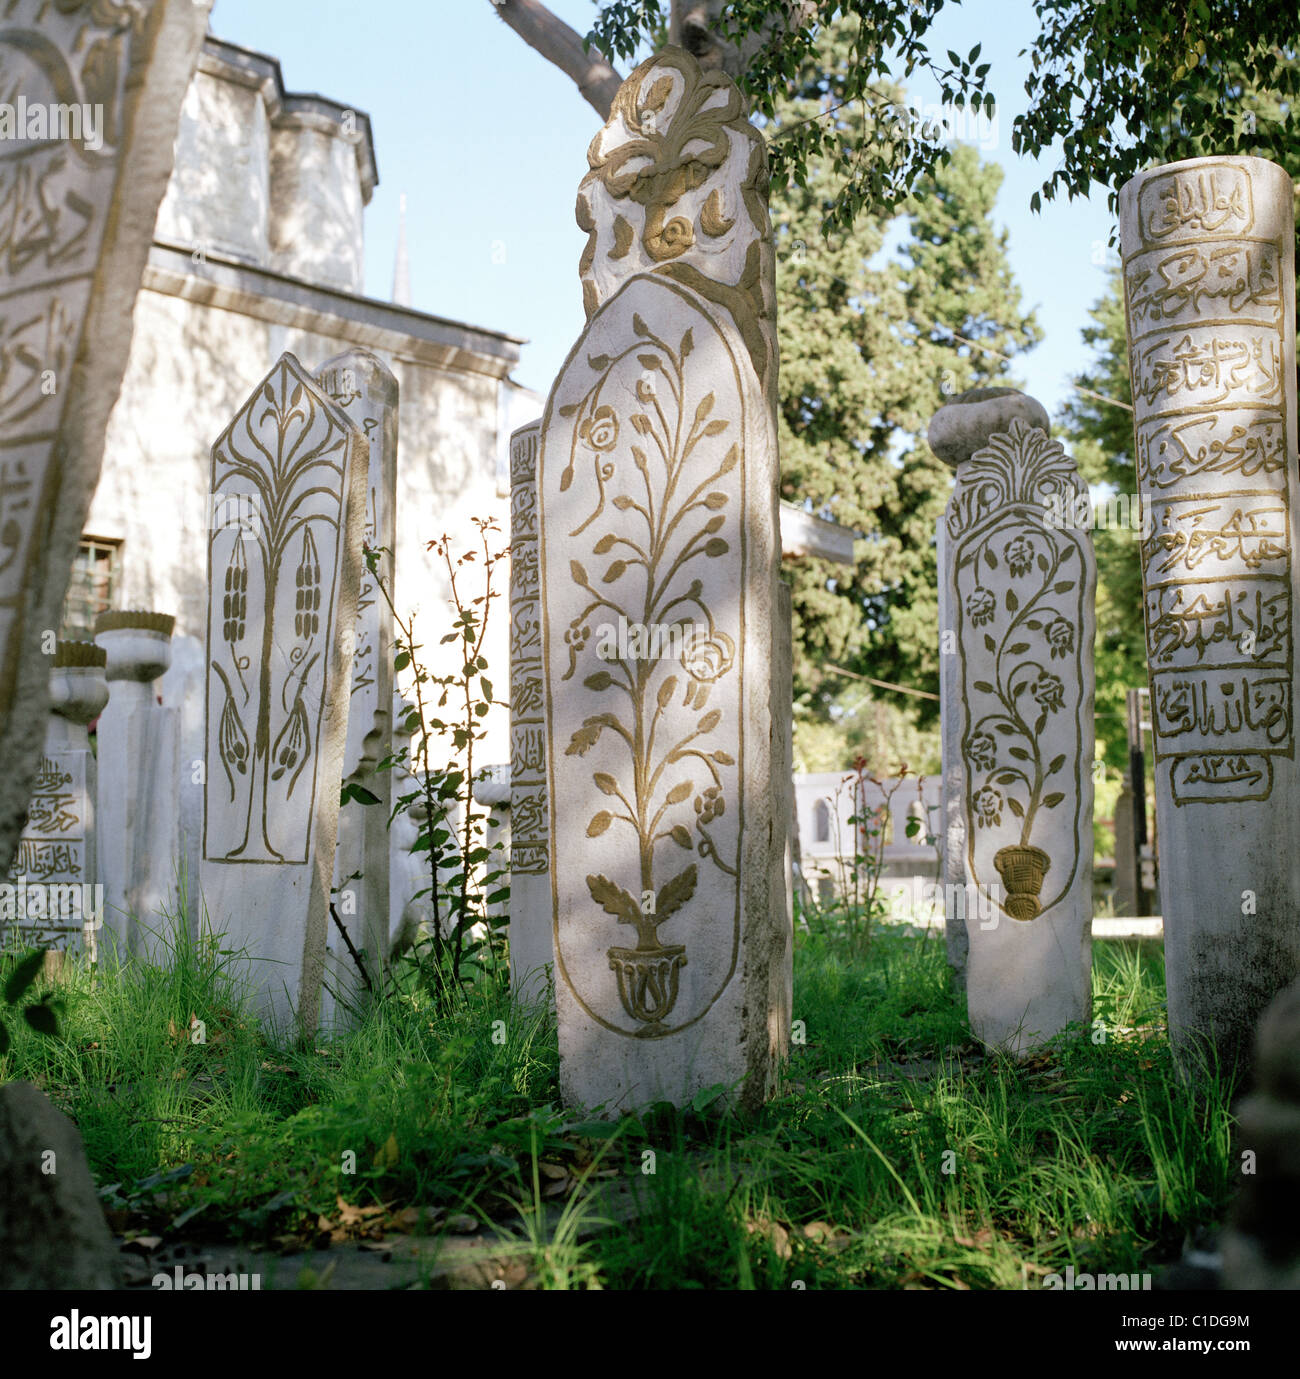 Muslim Islamic cemetery at Eyup Mosque at Golden Horn in Istanbul in Turkey in Middle East Asia. Ancient History Stock Photo